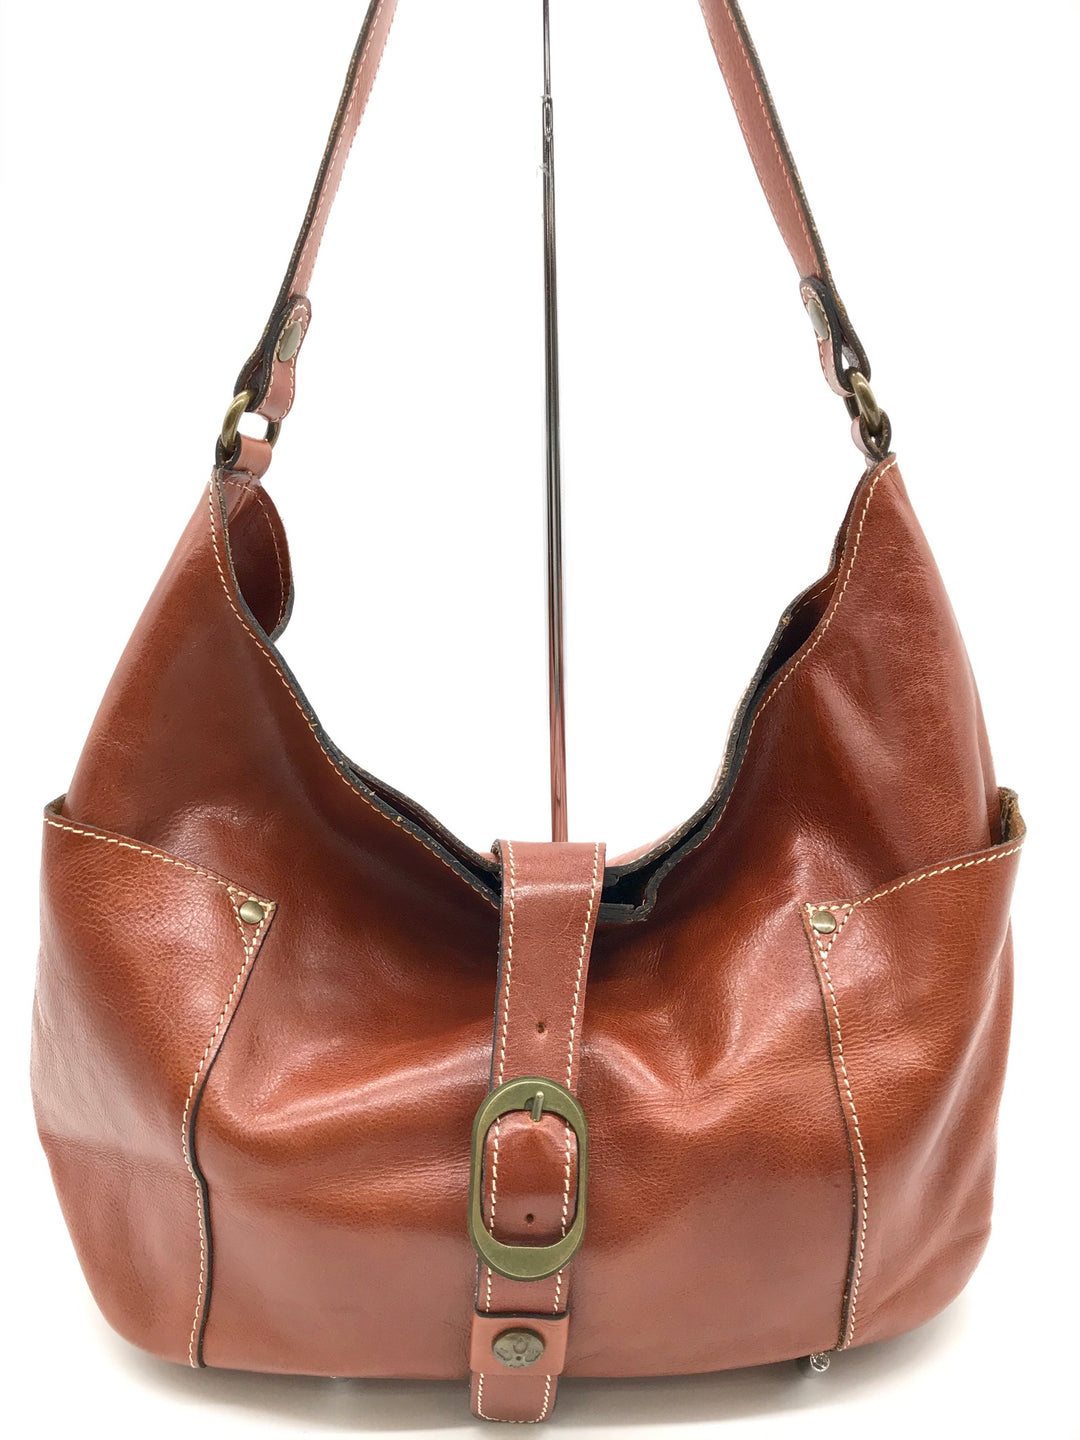 Primary Photo - BRAND: PATRICIA NASH <BR>STYLE: HANDBAG <BR>COLOR: BROWN <BR>SIZE: MEDIUM <BR>SKU: 262-26275-64345<BR>GENTLE WEAR SHOWS AS BOTTOM CORNERS - AS IS